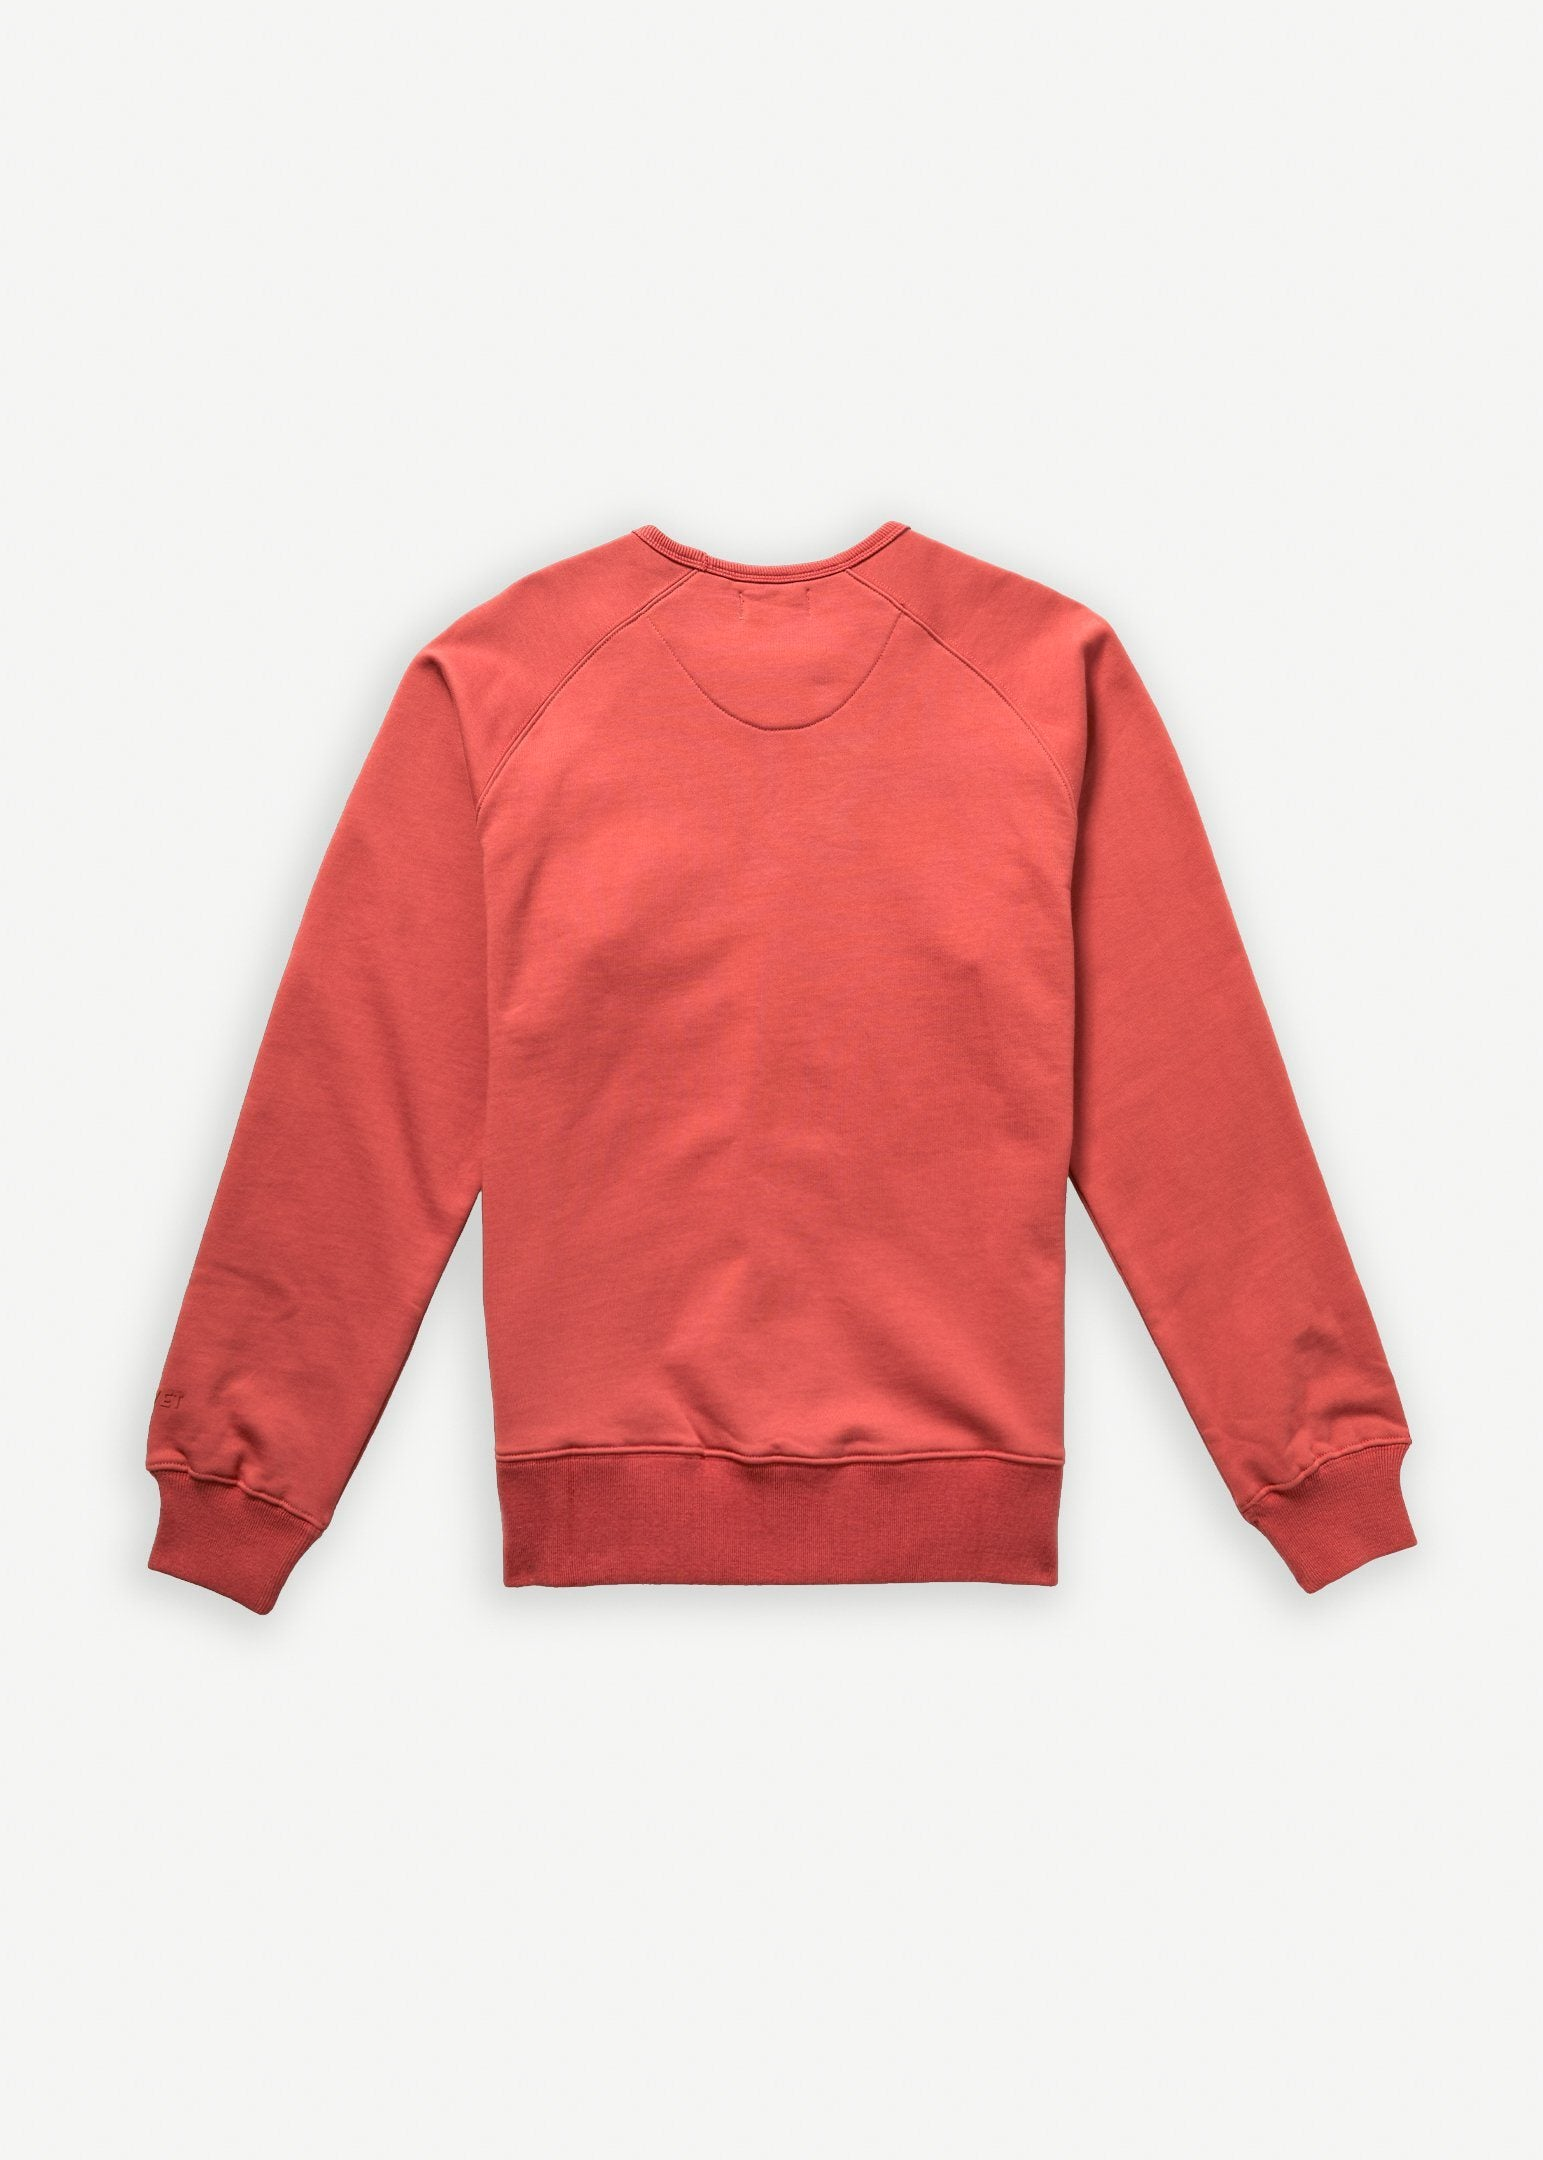 Relaxed Fit SWET-Shirt | Salmon